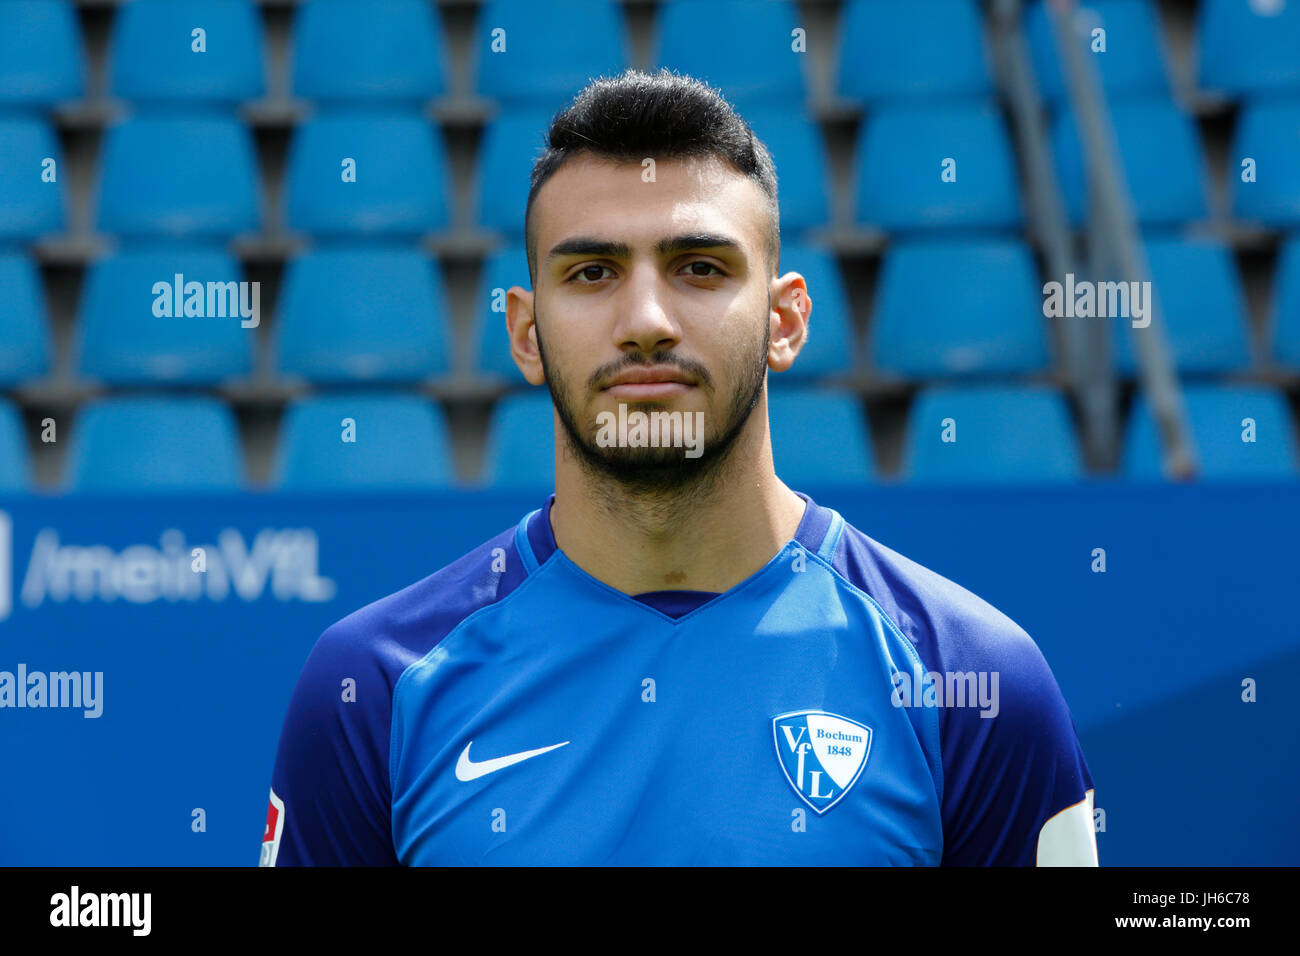 football, 2. Bundesliga, 2017/2018, VfL Bochum, team presentation for the game season, Evangelos Pavlidis - Stock Image